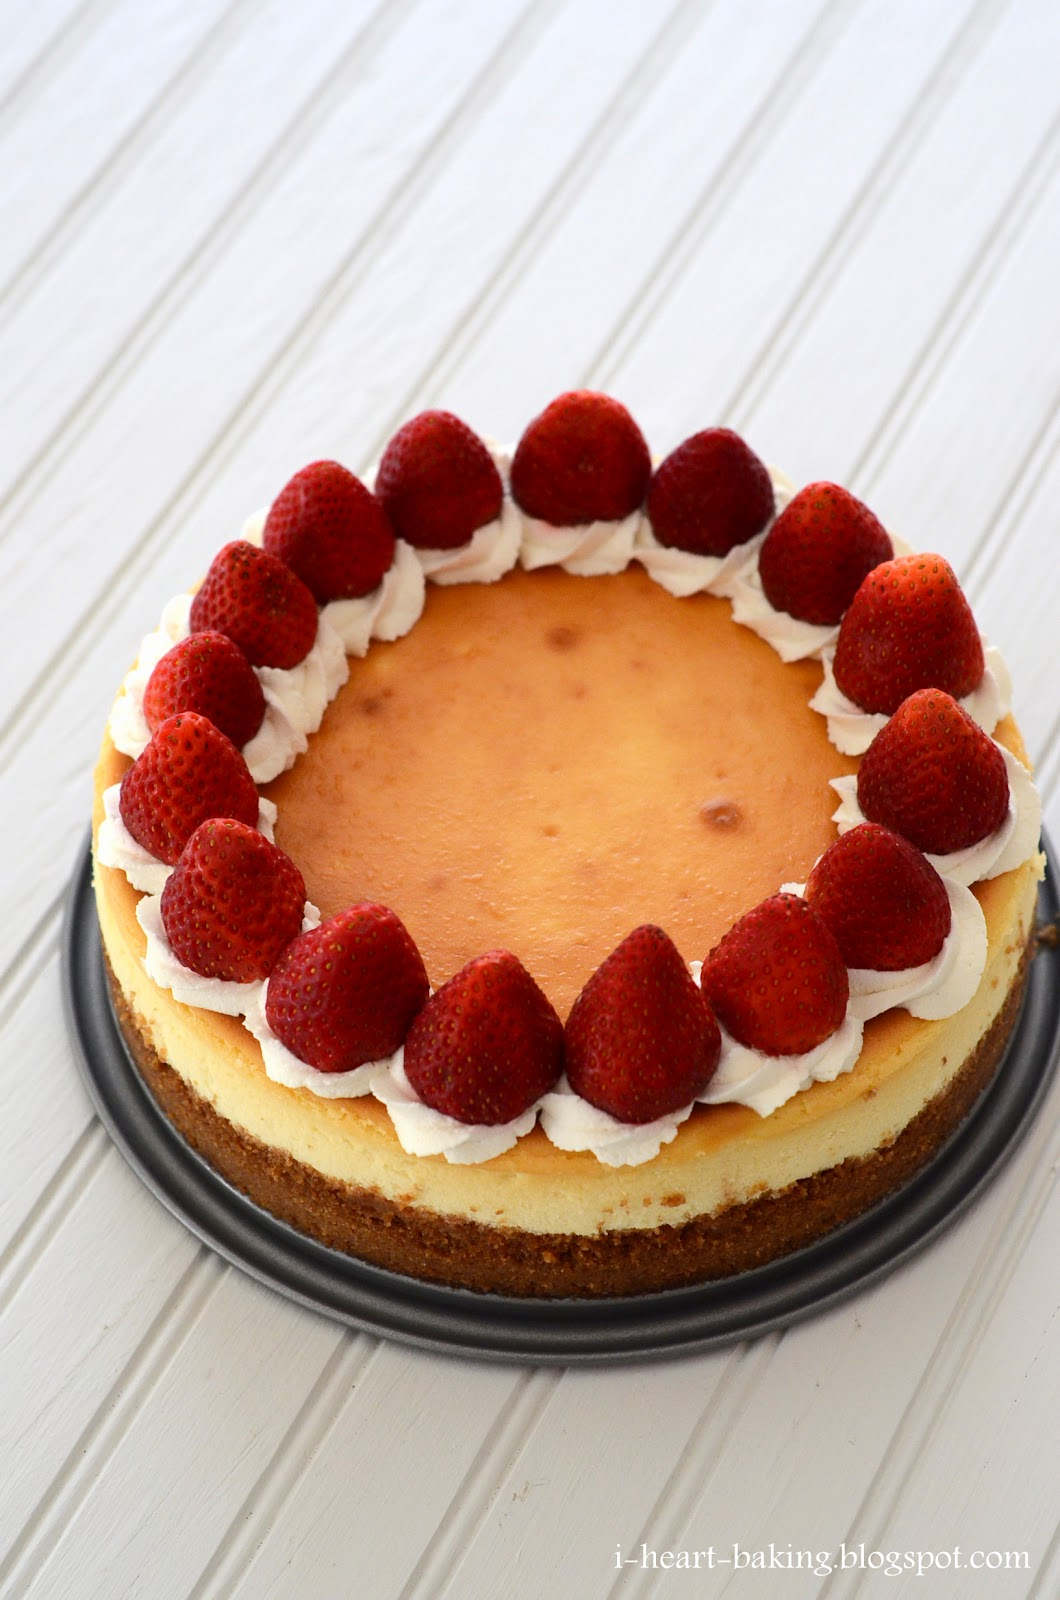 i heart baking classic cheesecake decorated with whipped cream and